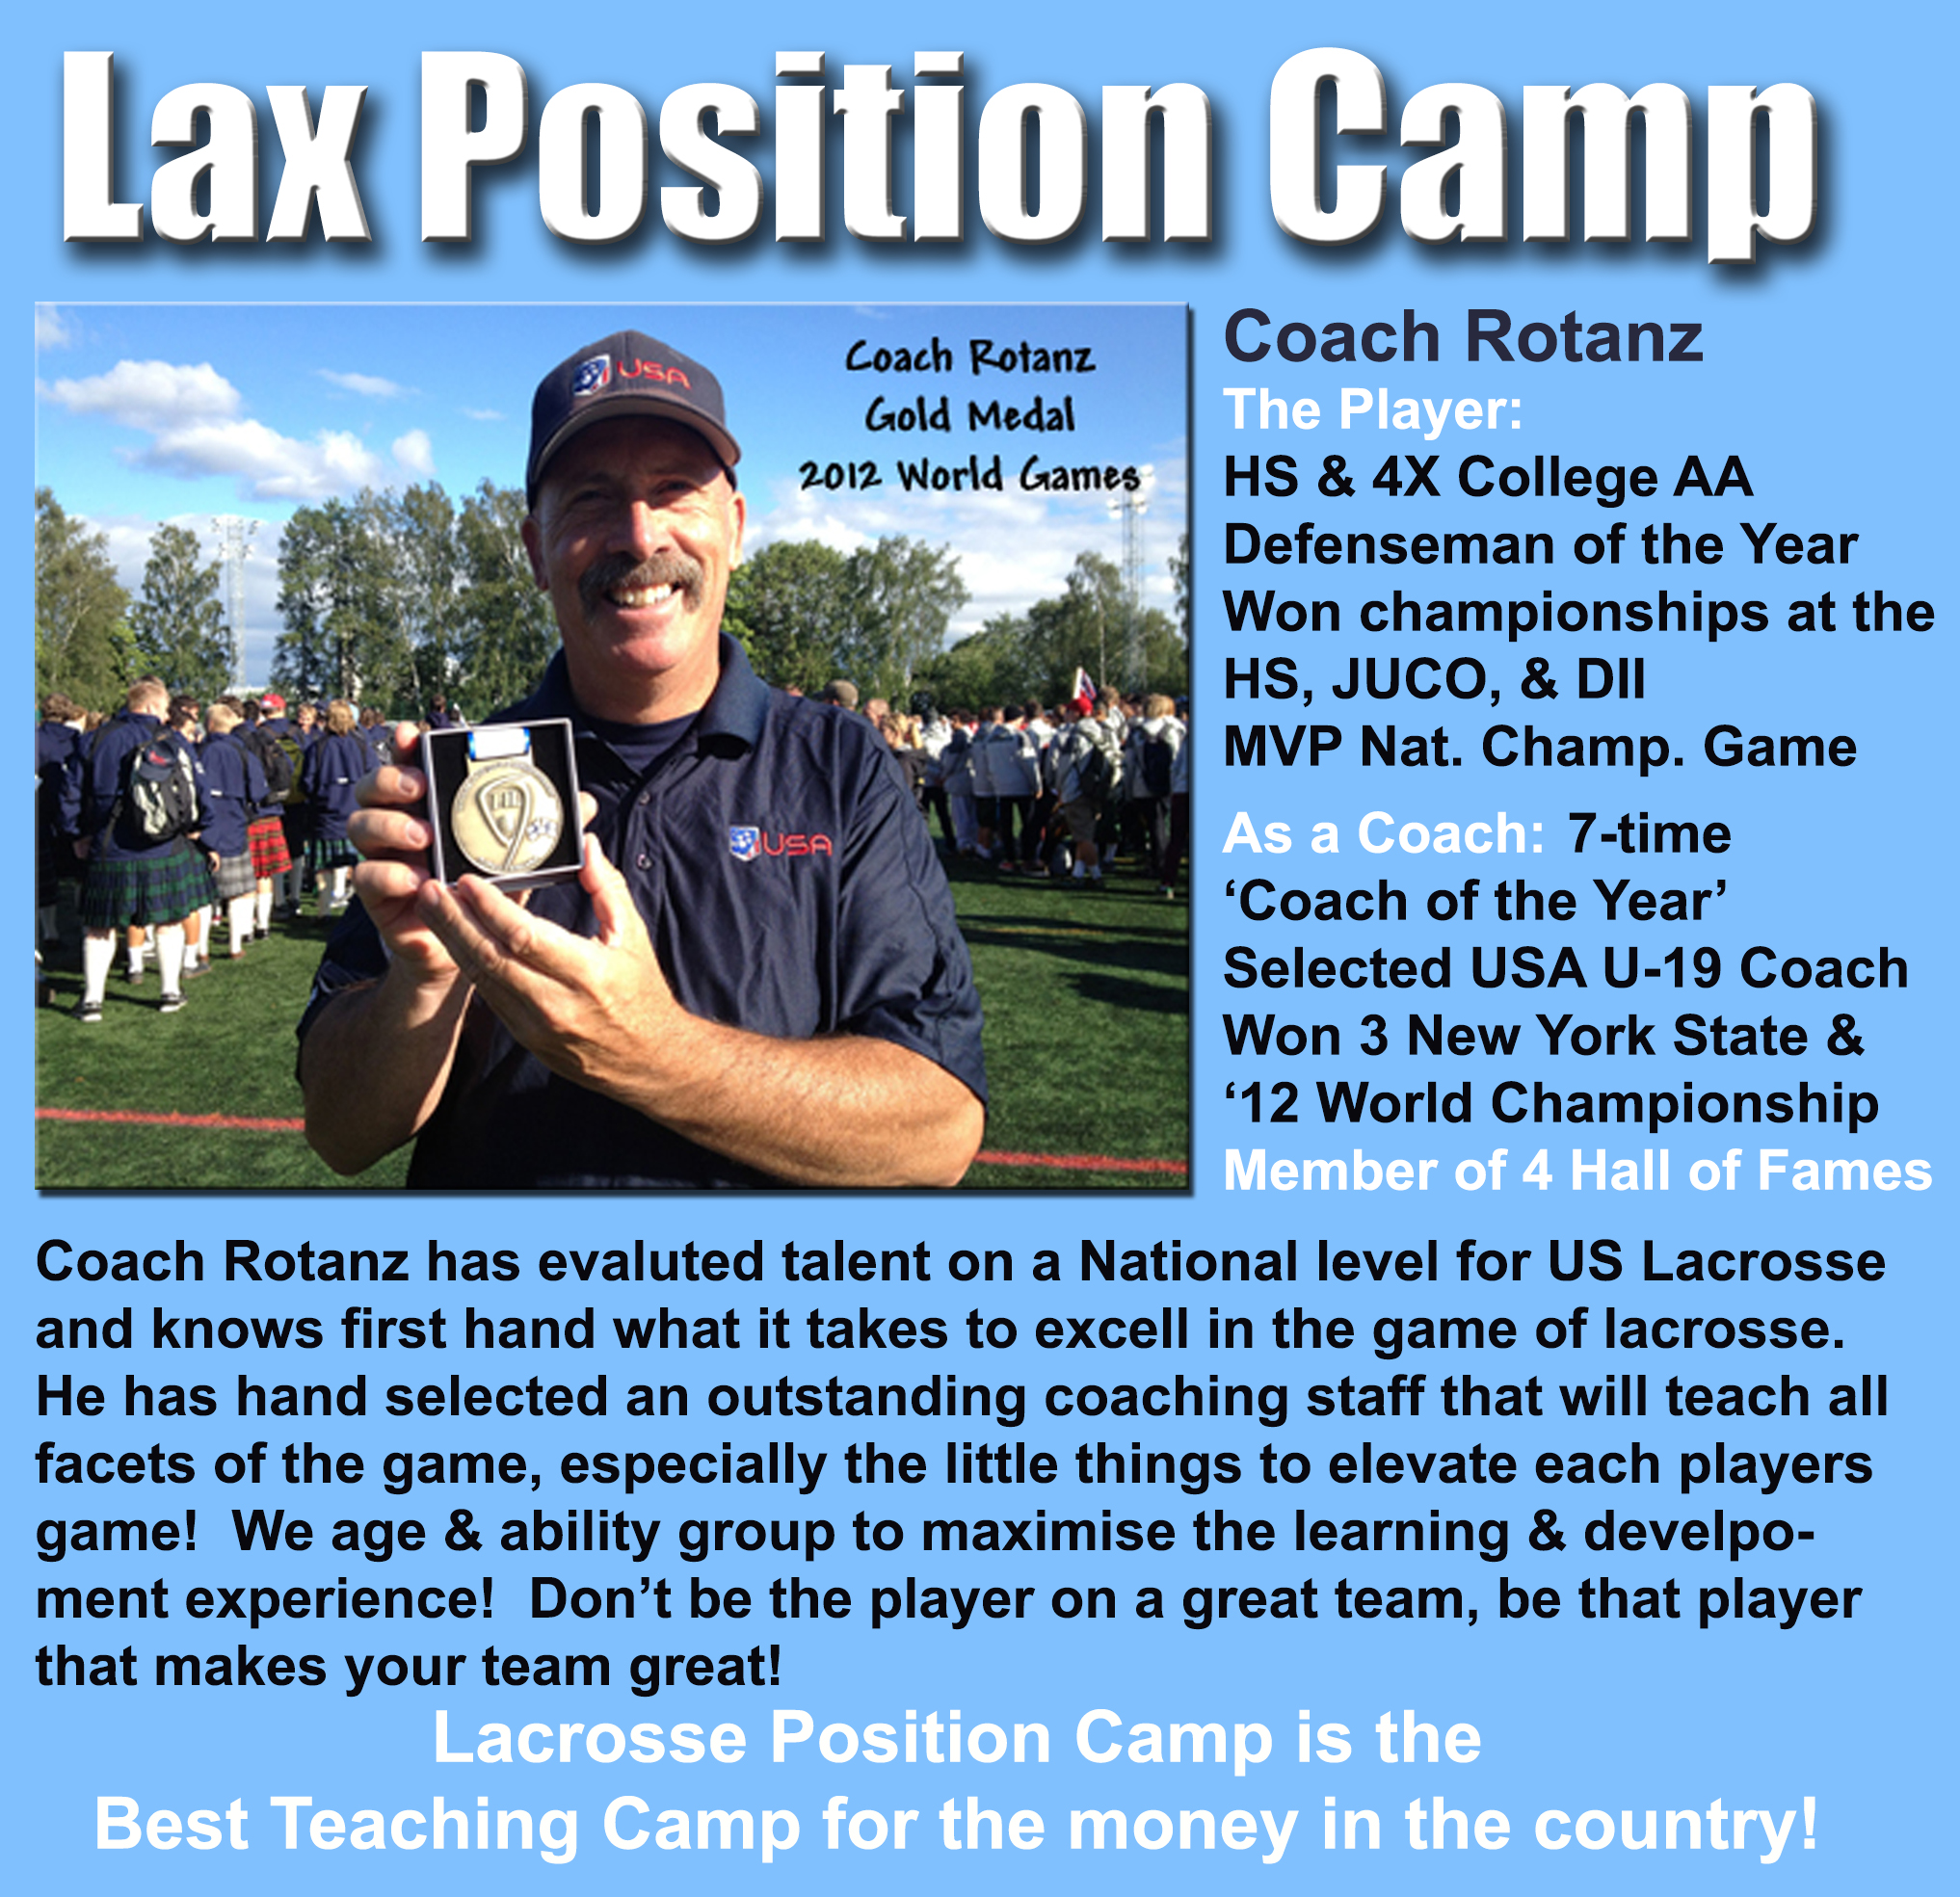 Lacrosse Position Camp